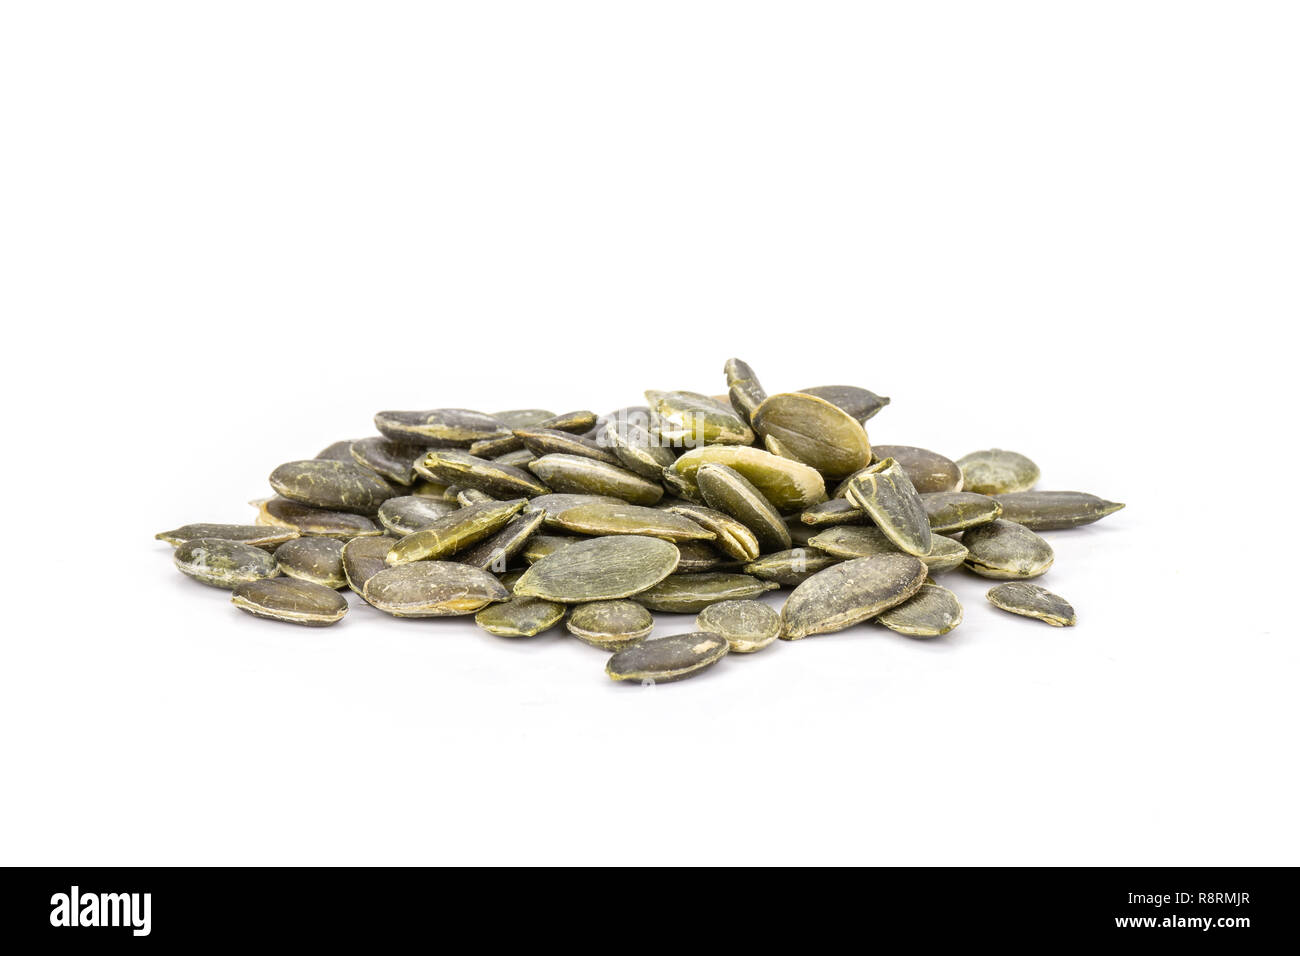 Lot of whole hulled pumpkin seeds heap isolated on white background Stock Photo